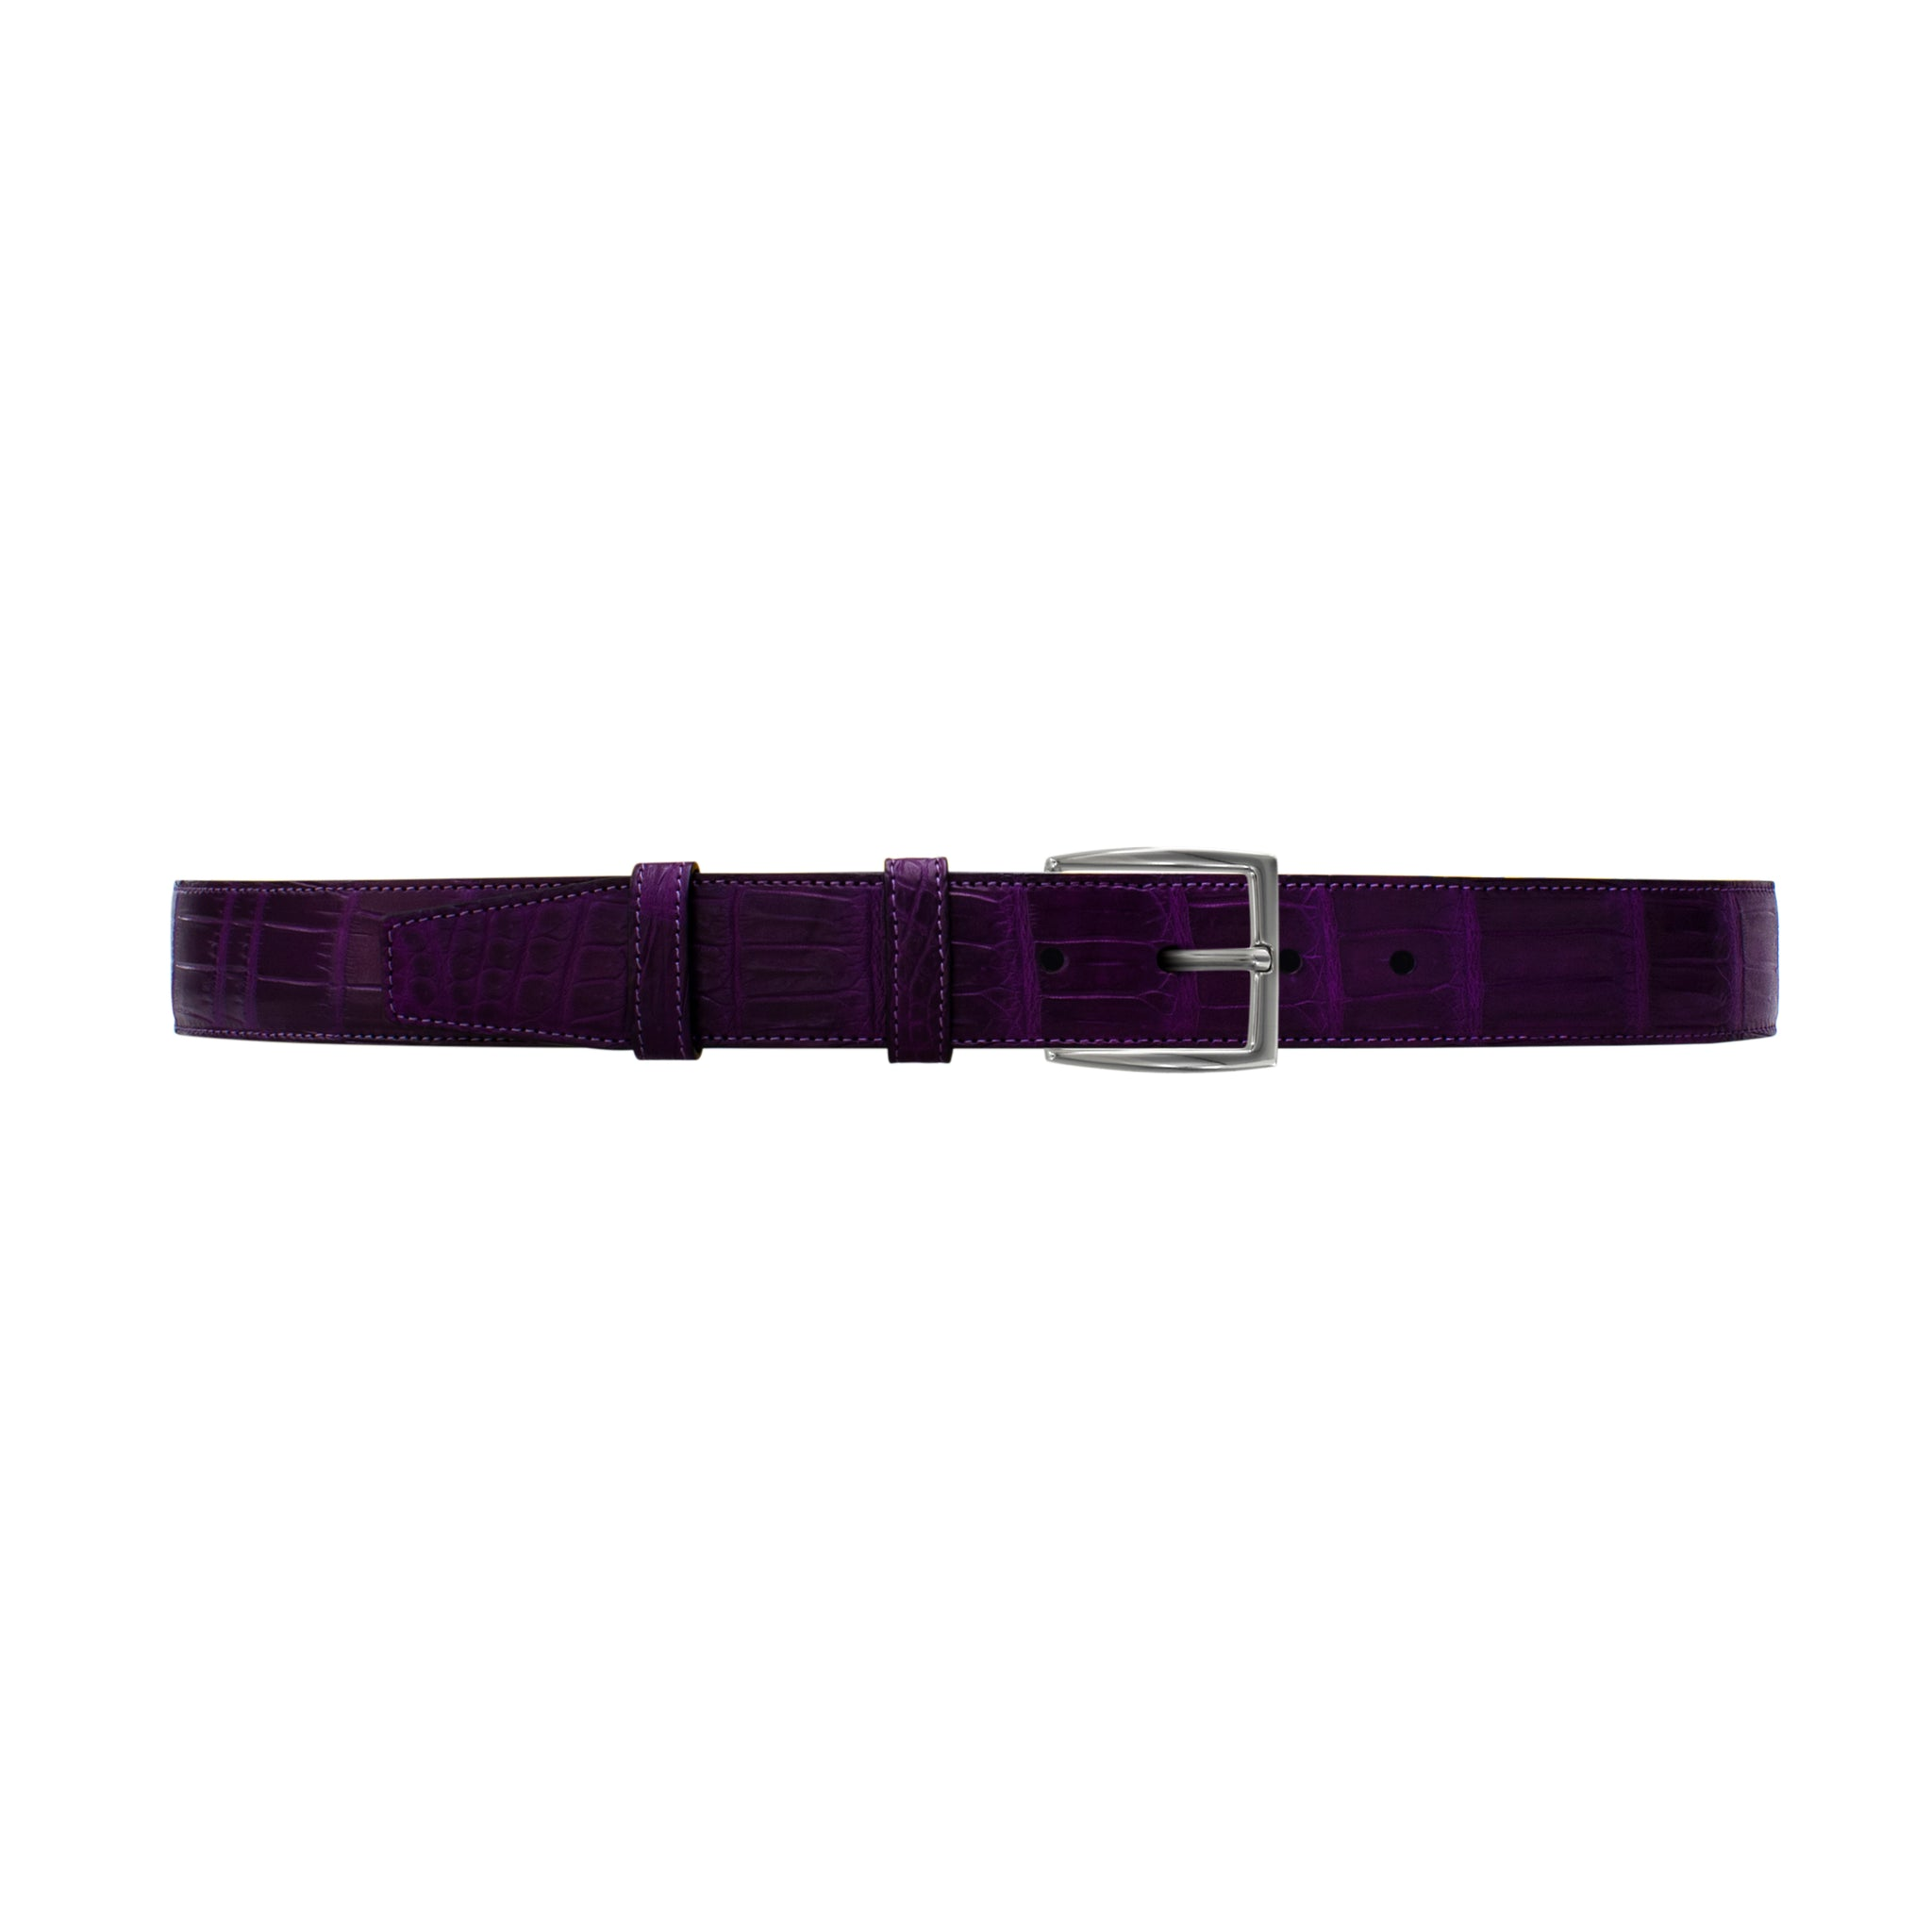 "1 1/2"" Violet Classic Belt with Winston Dress Buckle in Polished Nickel"